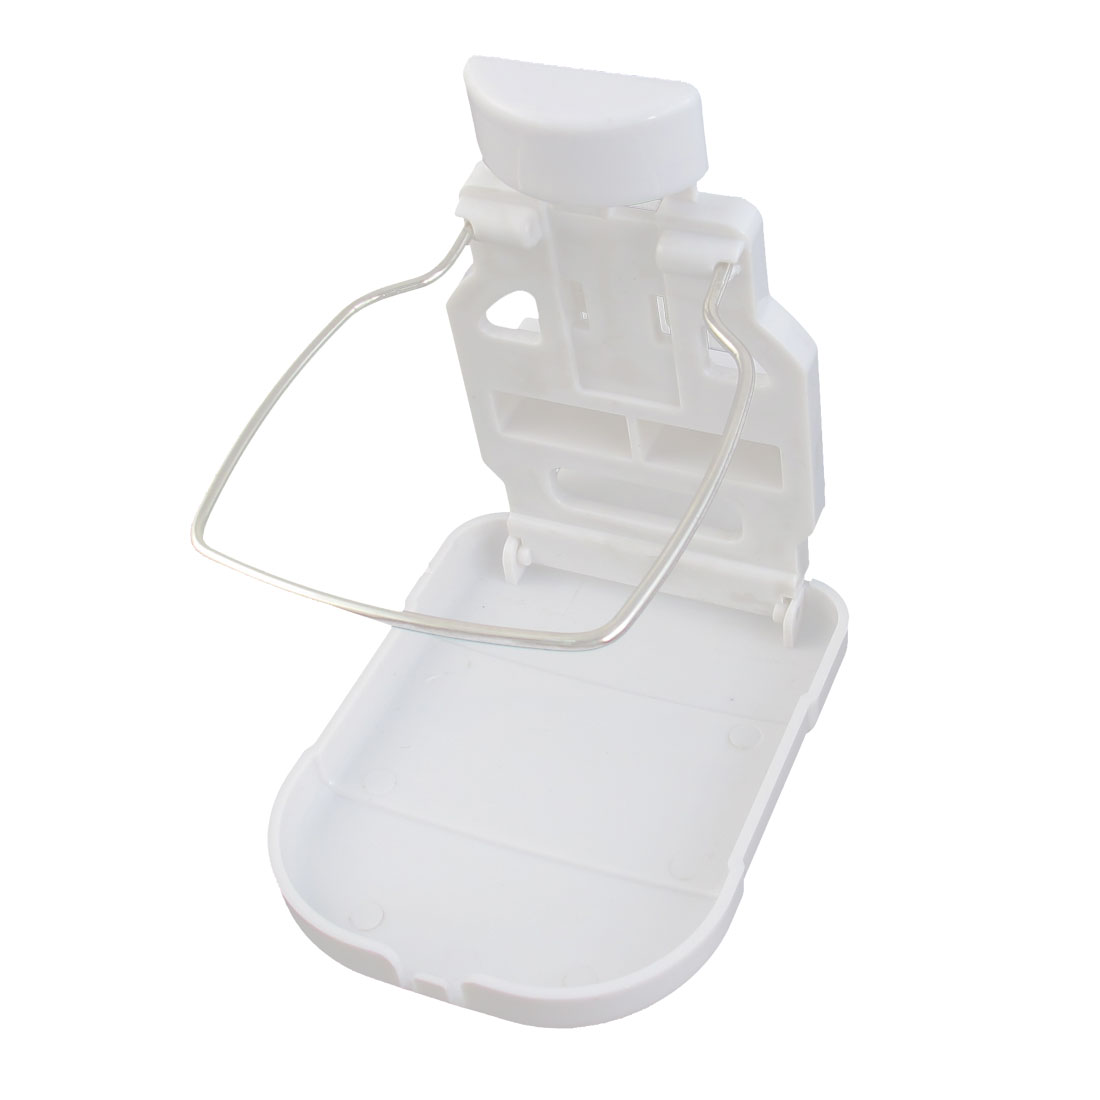 White Plastic Beverage Bottle Can Drink Cup Holder Stand Bracket for Car